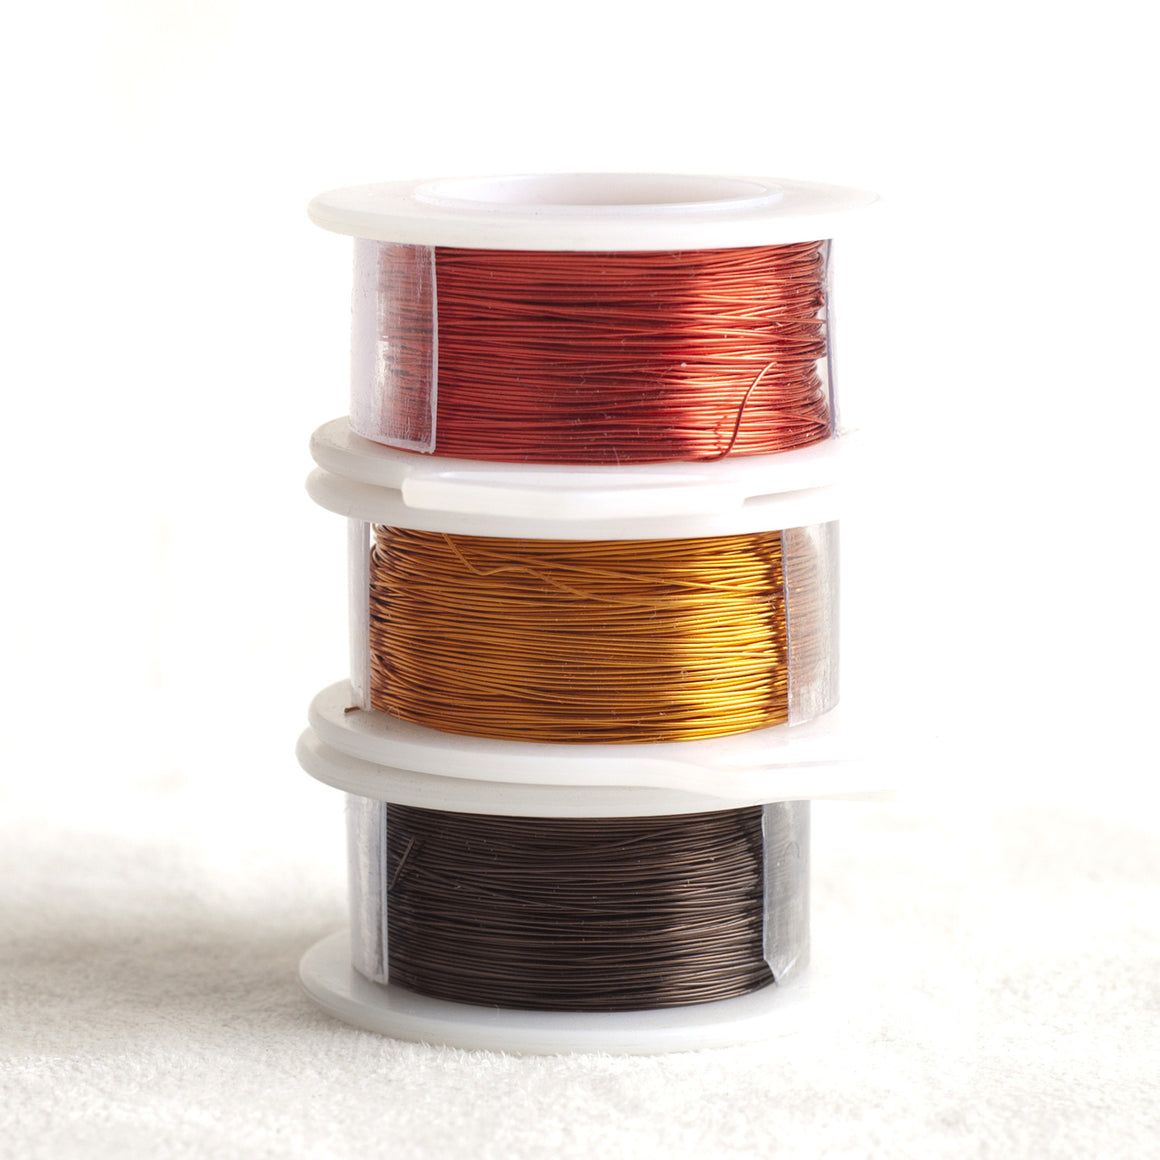 Color wire, artistic wire for wire crochet - EARTH E2, E4, C6 - Yooladesign